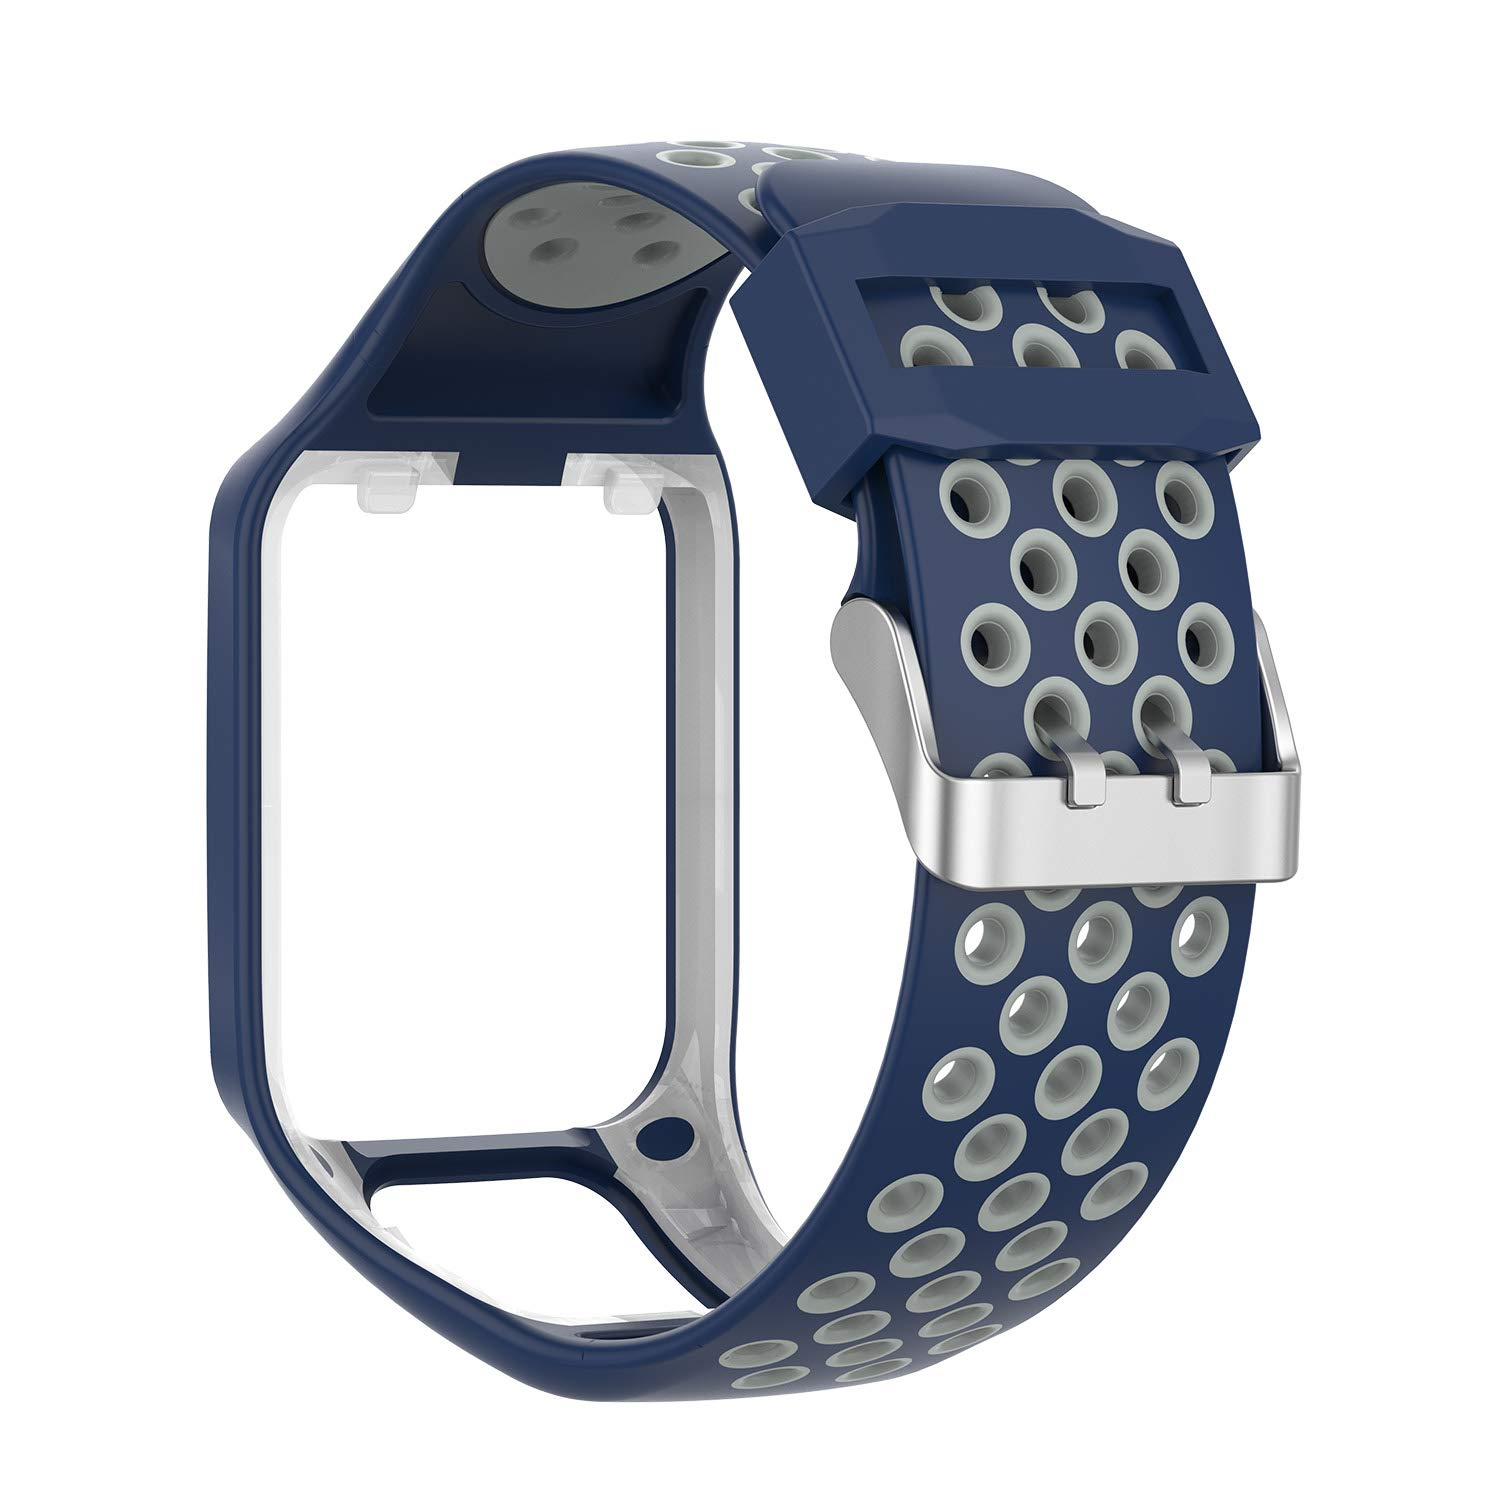 Compatible with Tom Tom Bands,Moorovgi Silicone Colorful Replacement Watch Band Wristband Bracelet for Tom Tom Adventurer/Tom Tom Golfer 2, Runner ...